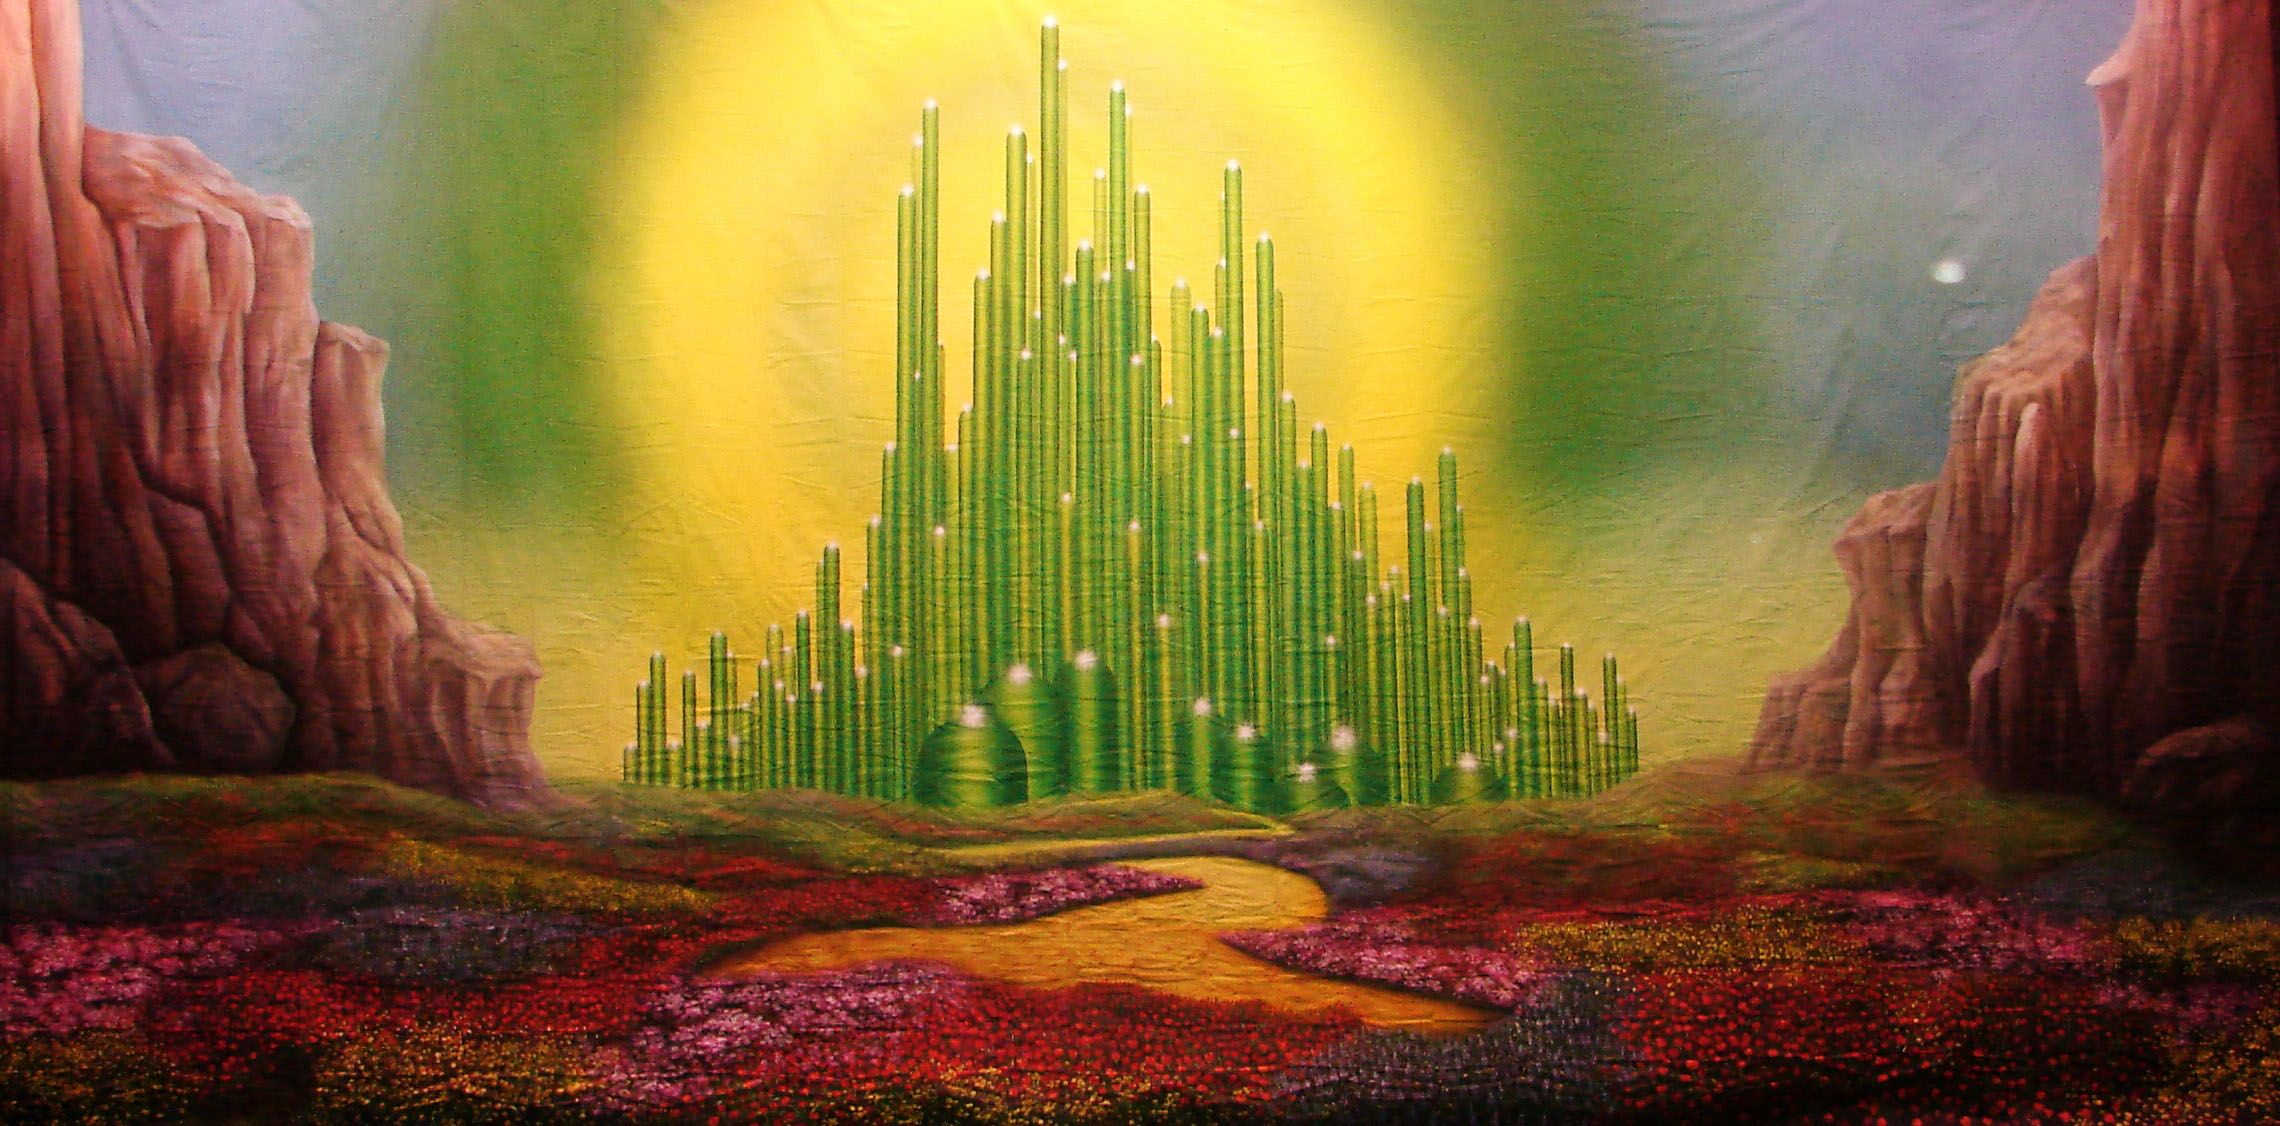 Wizard of Oz Theatrical Backdrop Rentals by Kenmark Scenic Backdrops ...